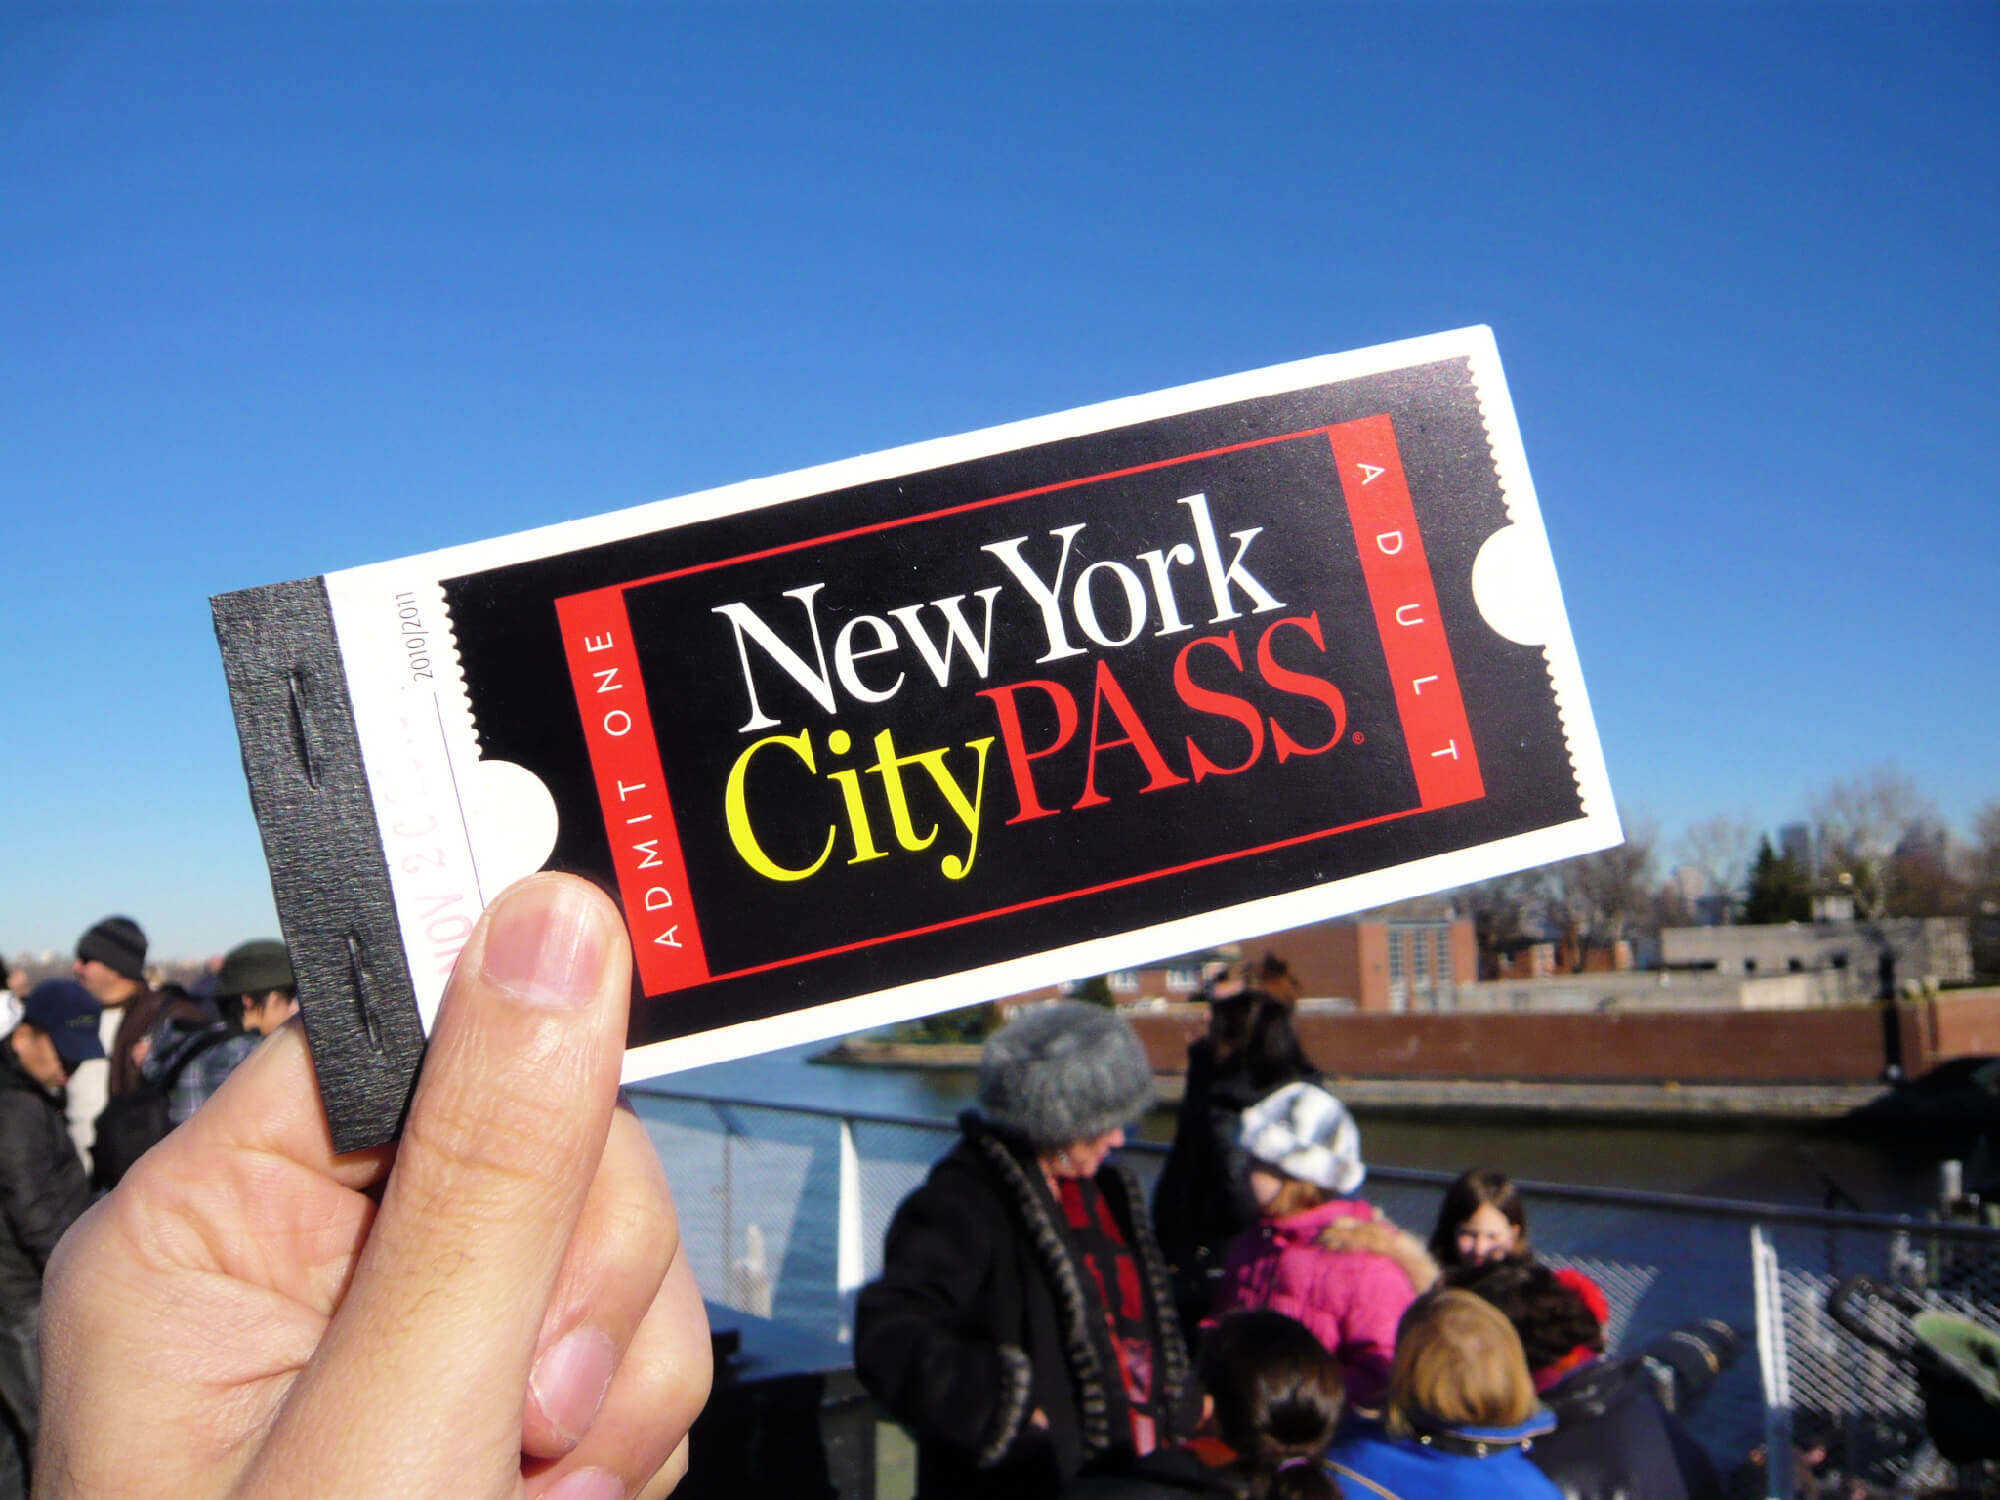 The New York City Pass is a great way to spend a weekend in New York City on a budget.